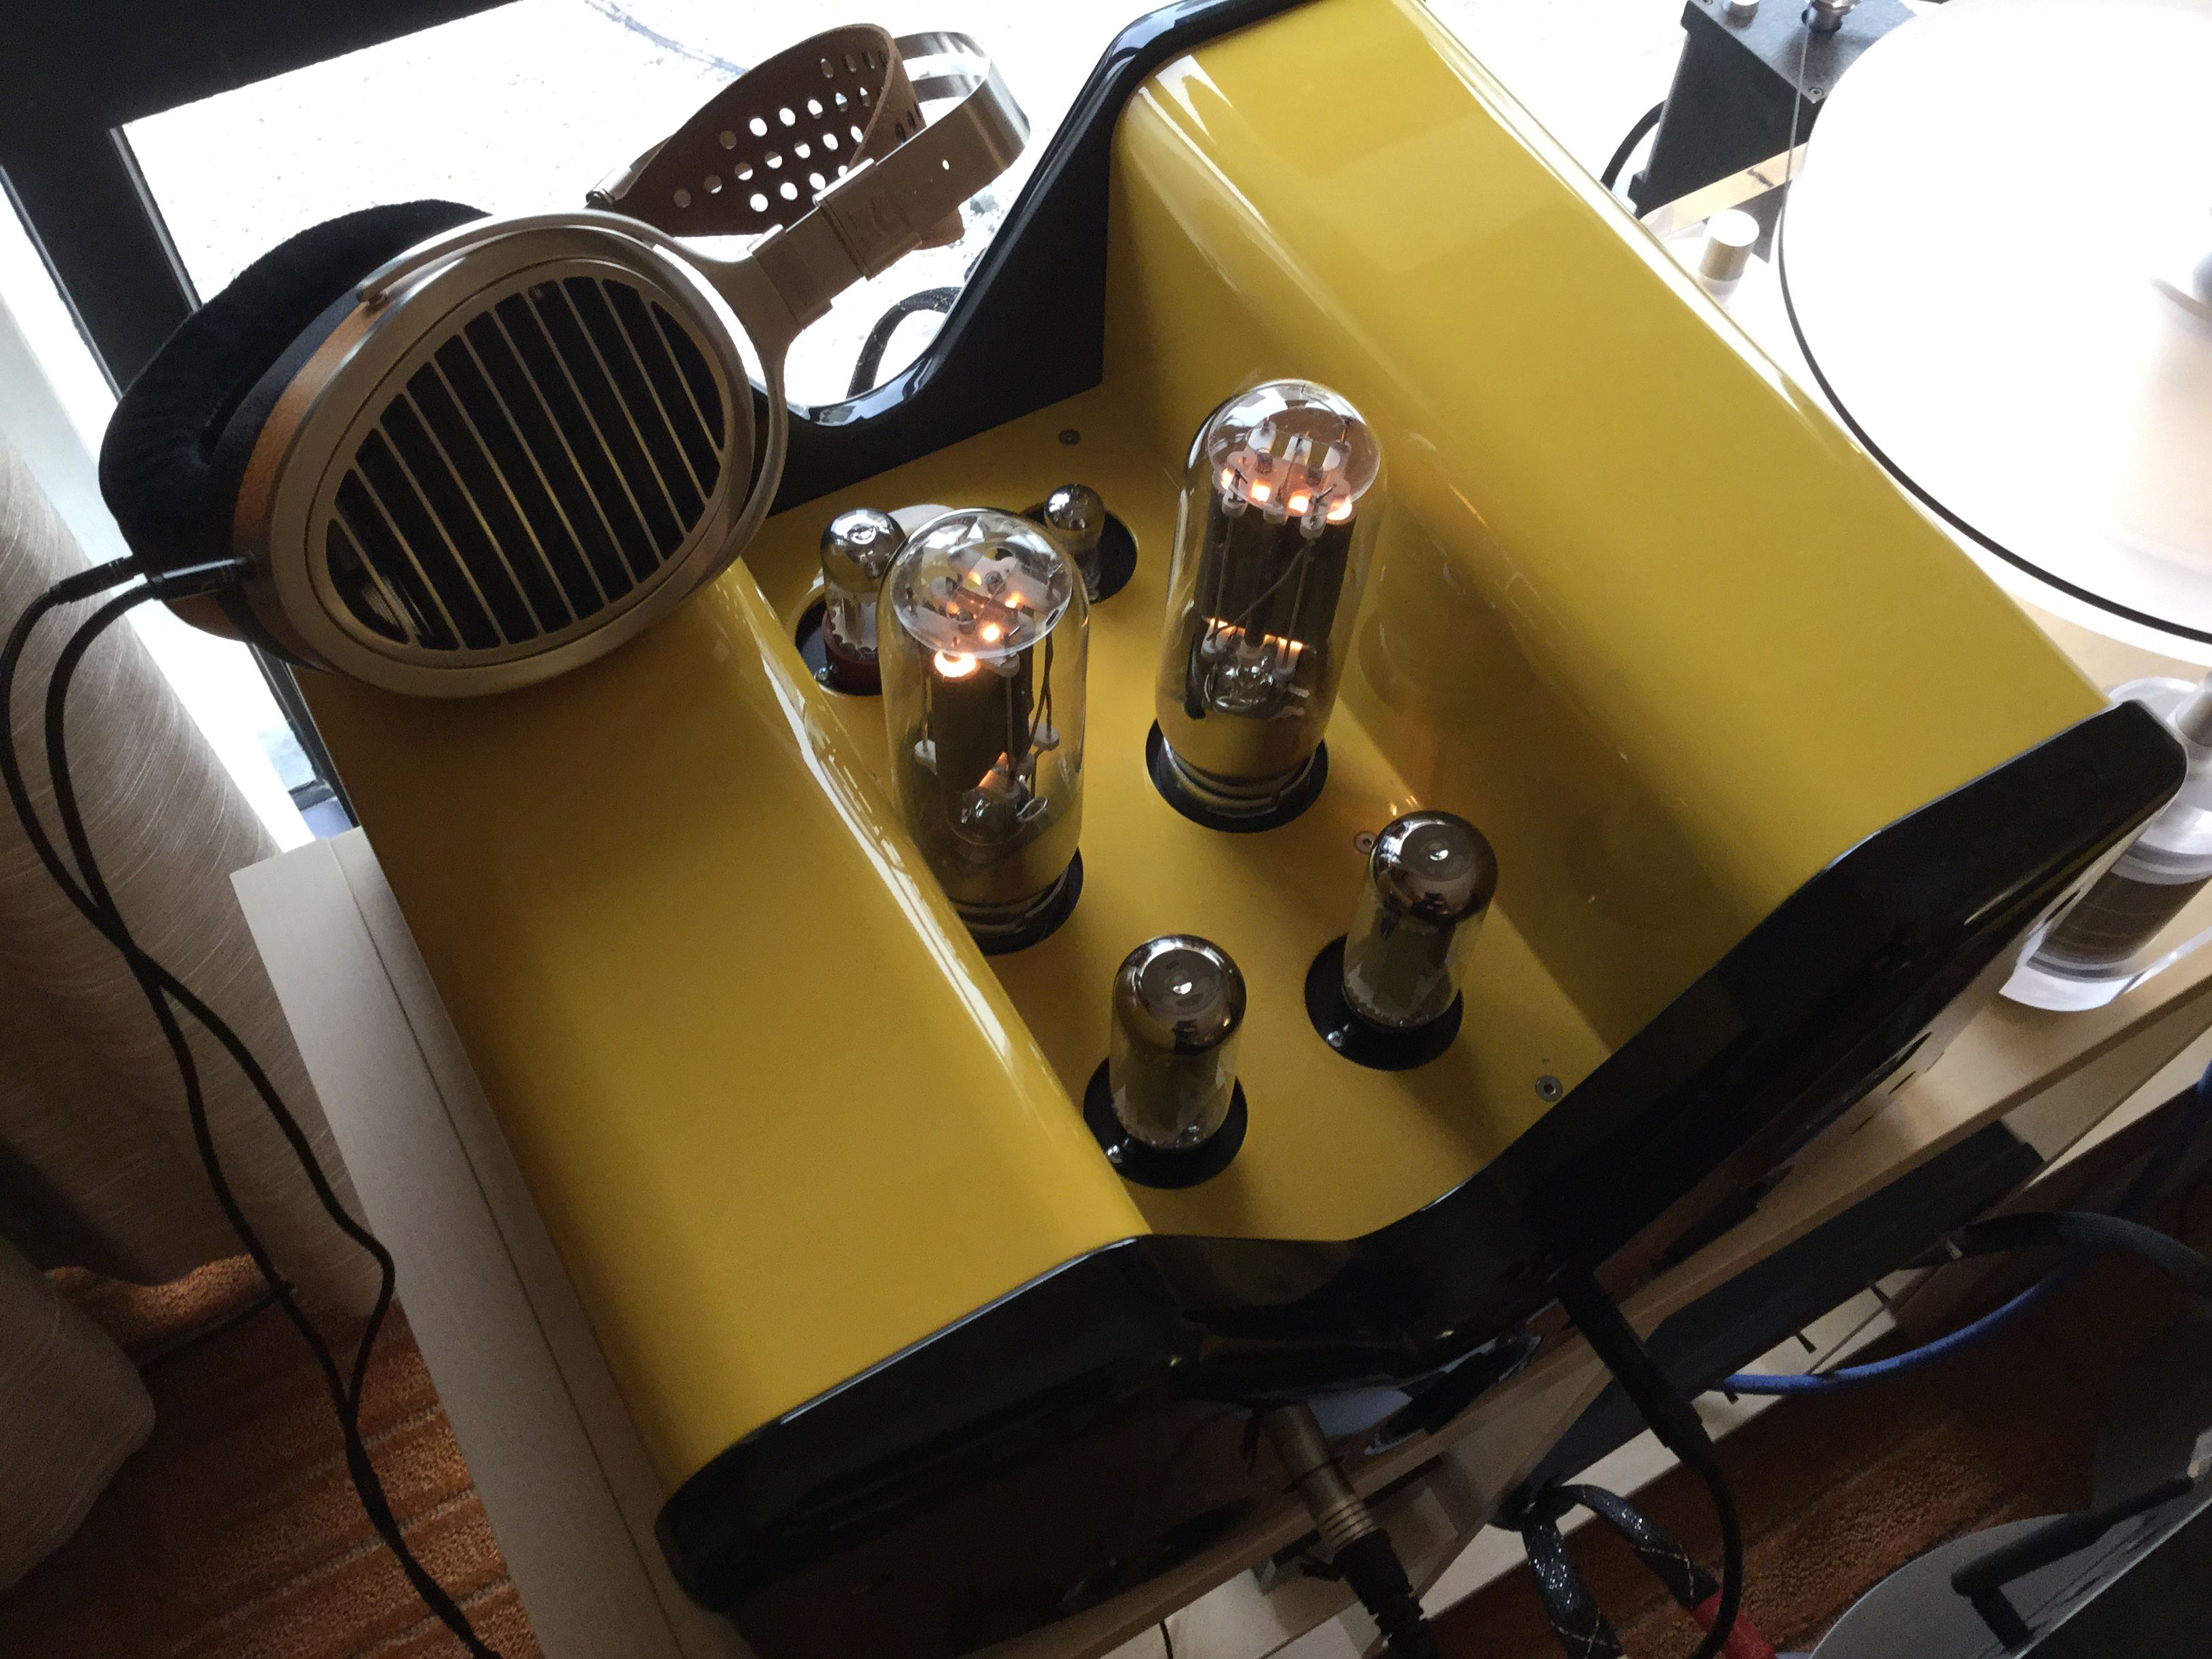 The Viva Egoista 845 A Based Headphone Amplifier Seen By Many As One Of Finest Available In World Headphones Are Hifiman He1000 S And